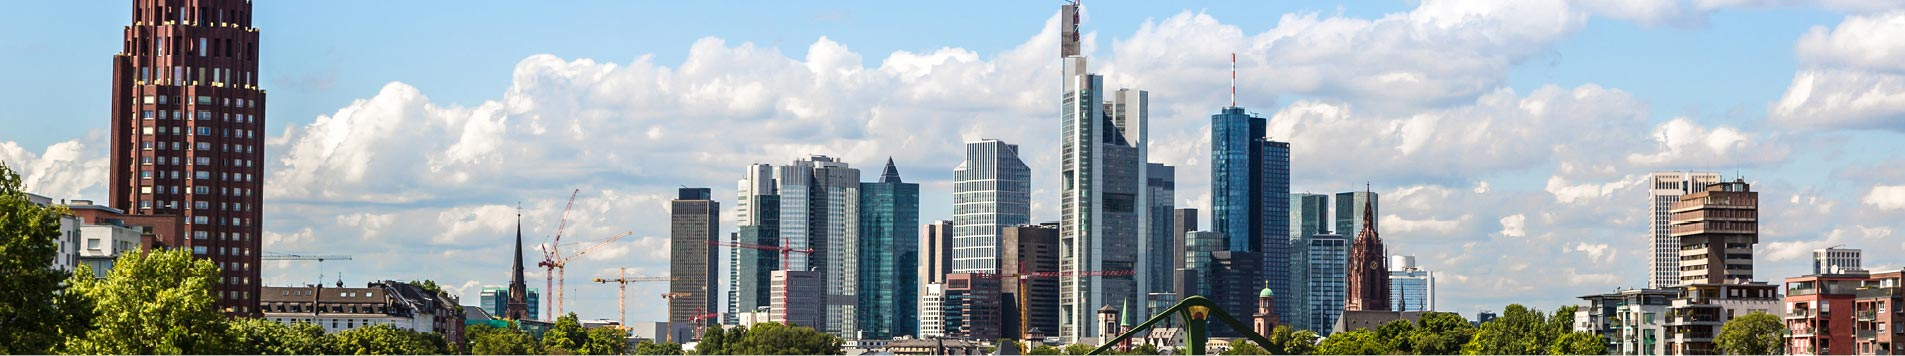 M&A - Mergers and Acquisitions Frankfurt City - Germany